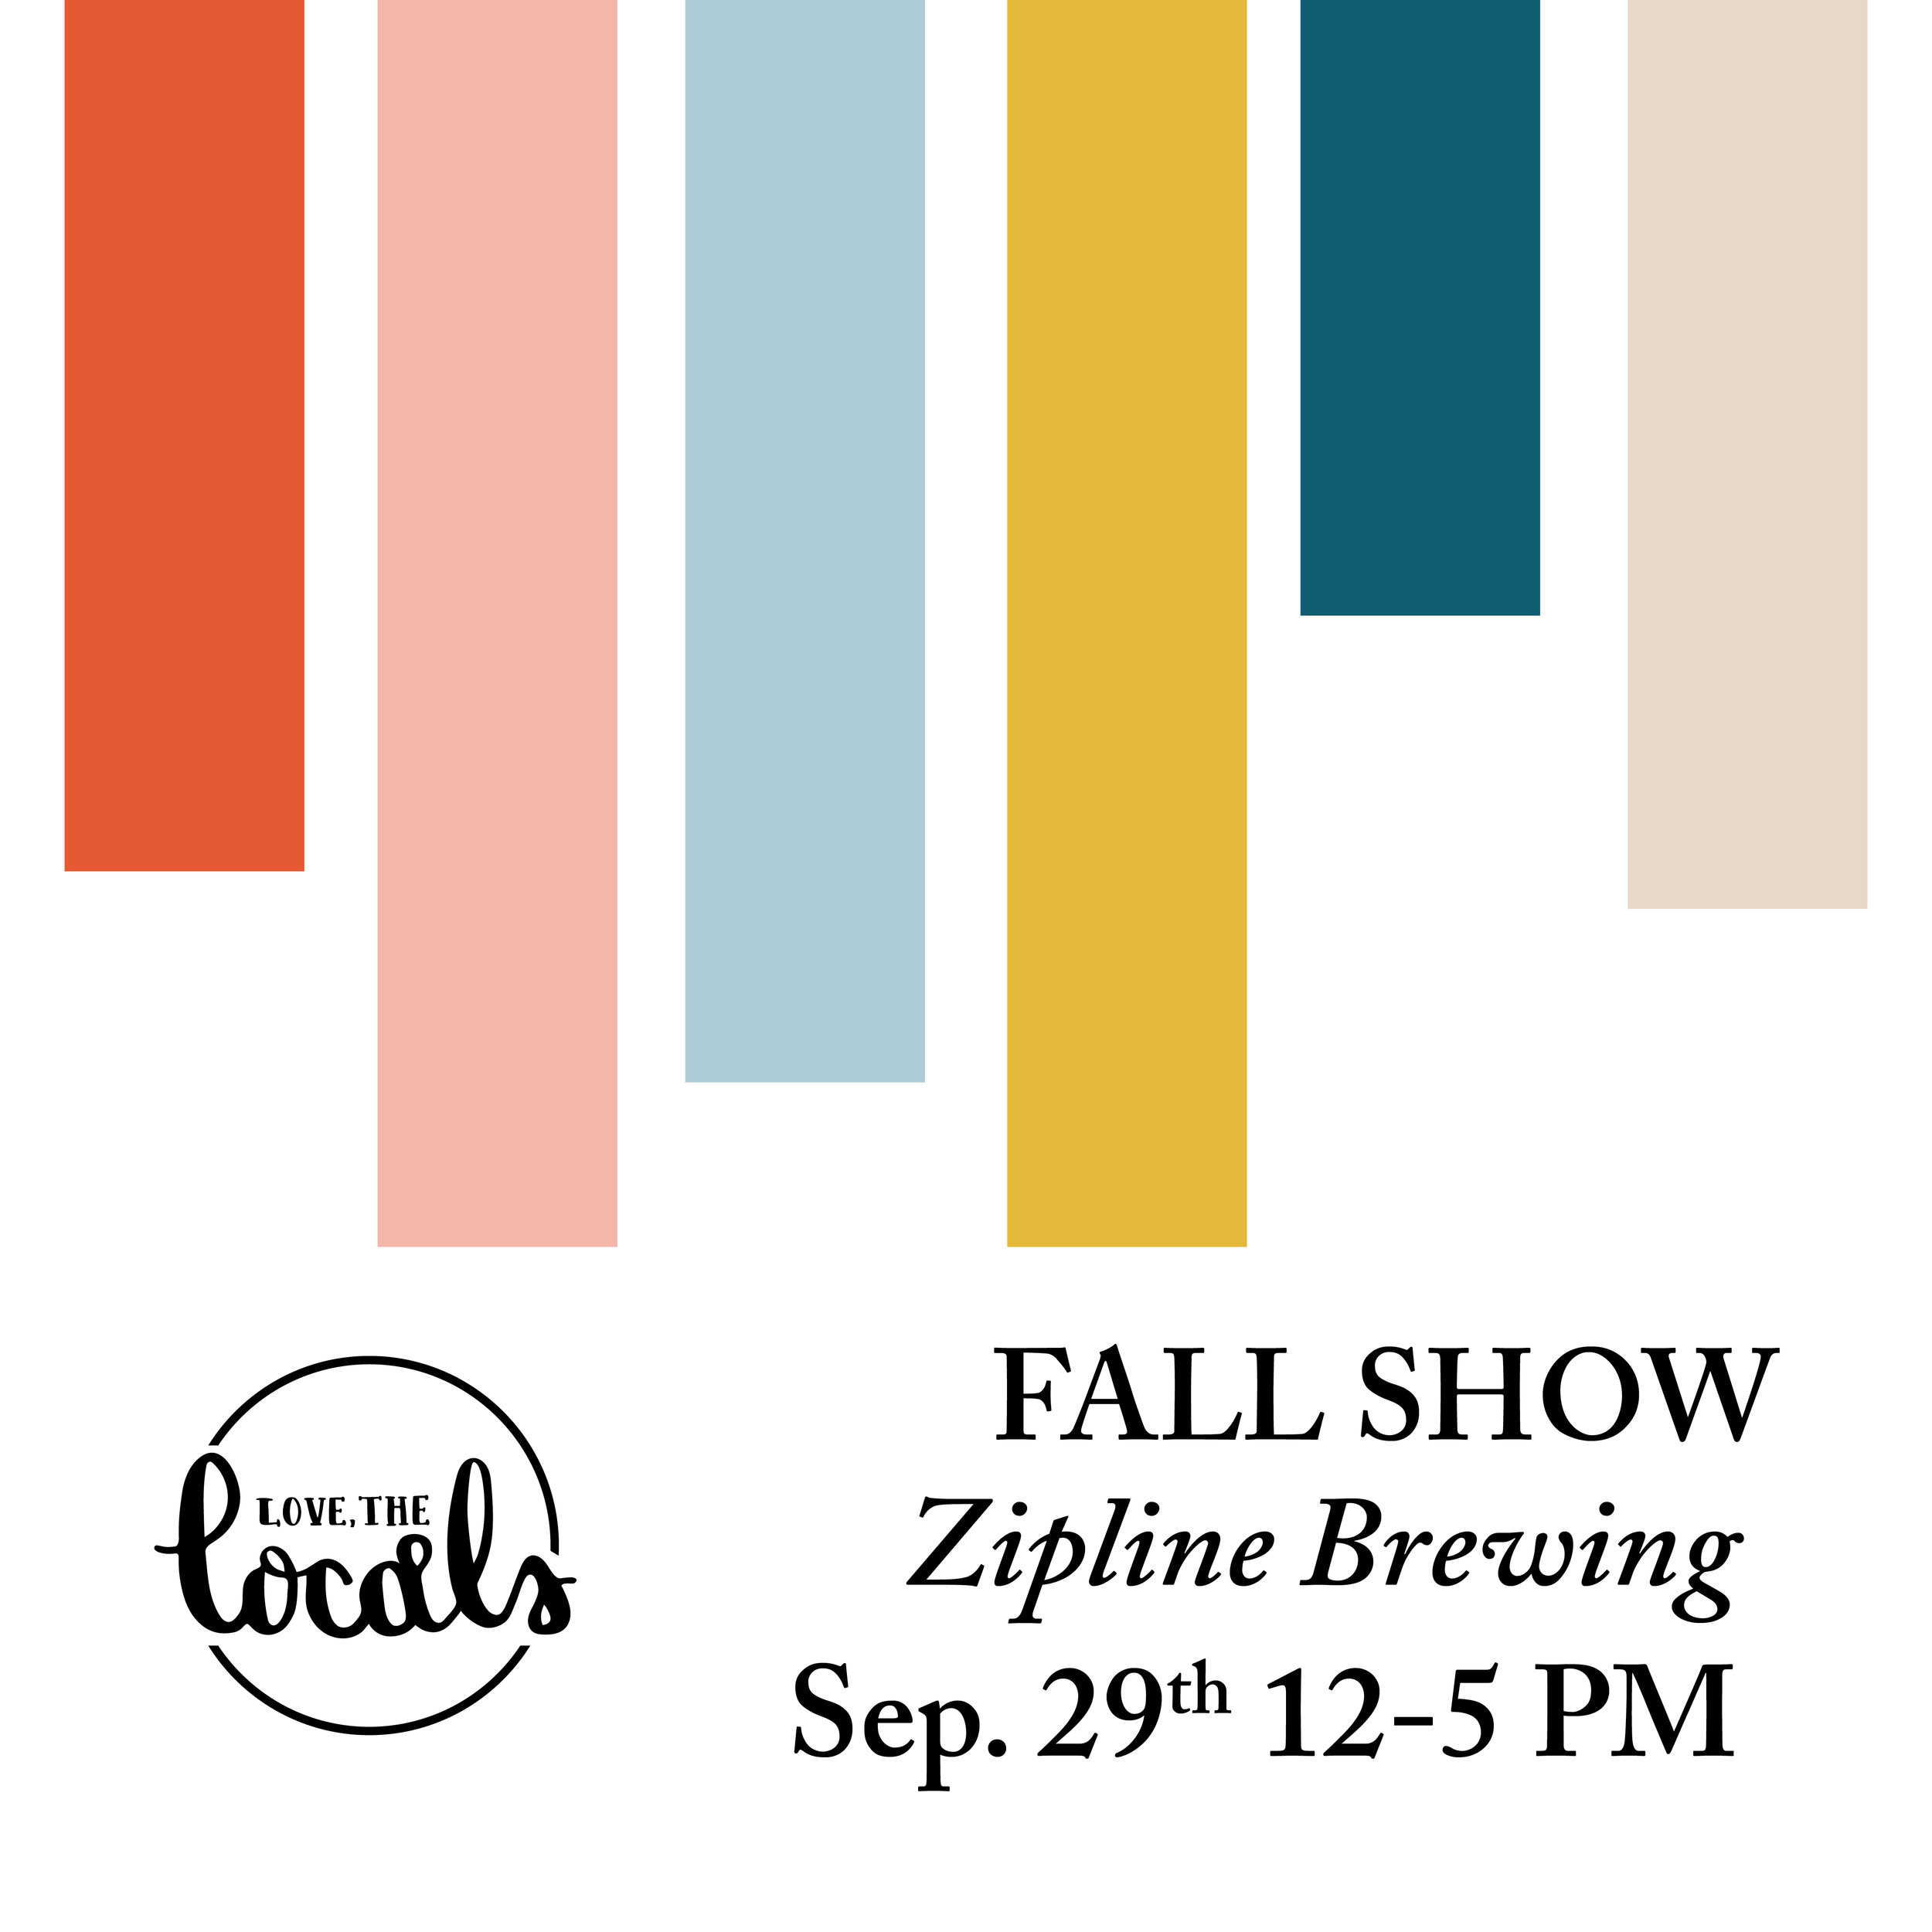 Love, The Locals Fall Makers Event September 29th